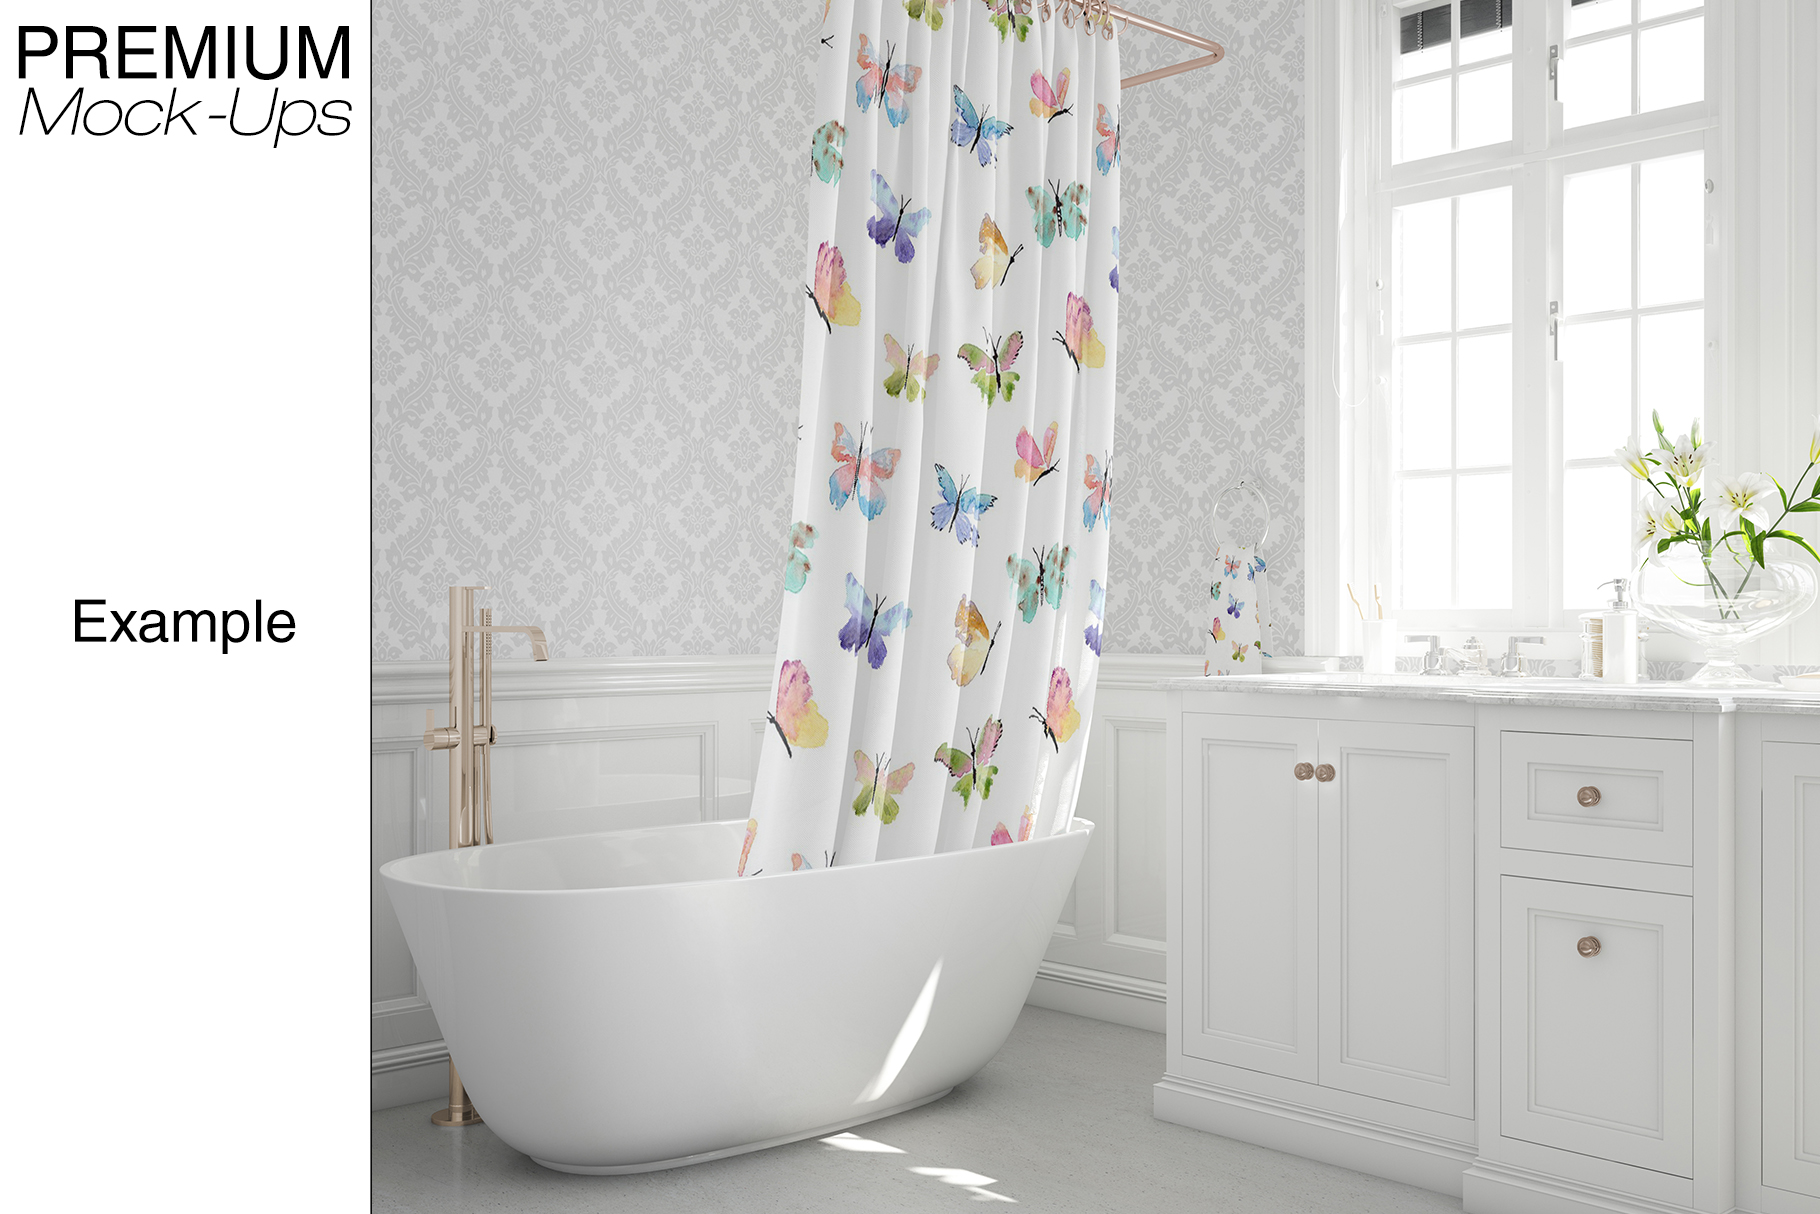 Bath Curtain Mockup Pack example image 4